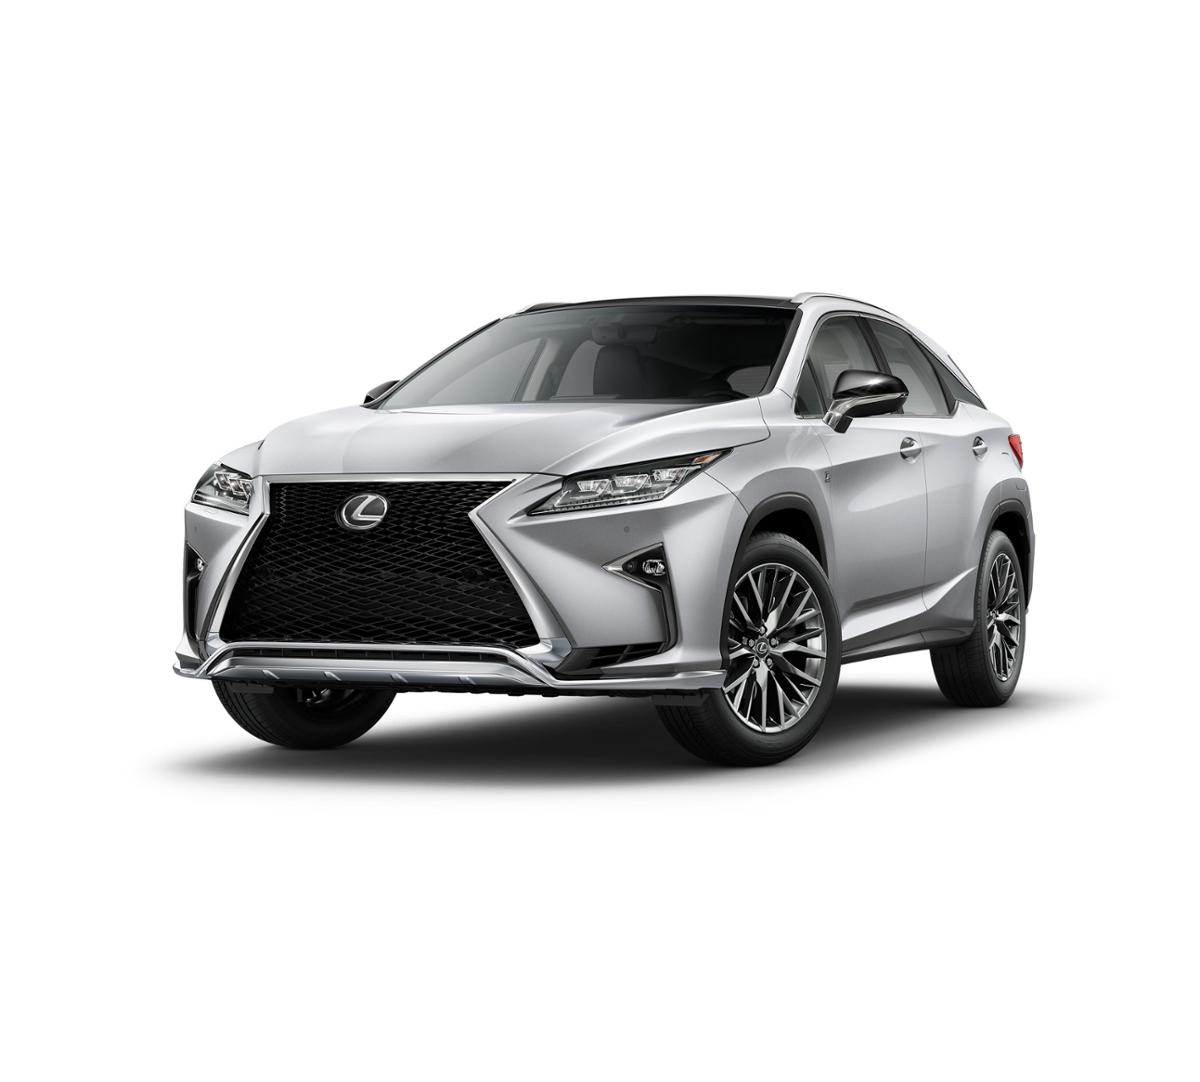 2019 Lexus RX 350 Vehicle Photo in Oakhurst, NJ 07755